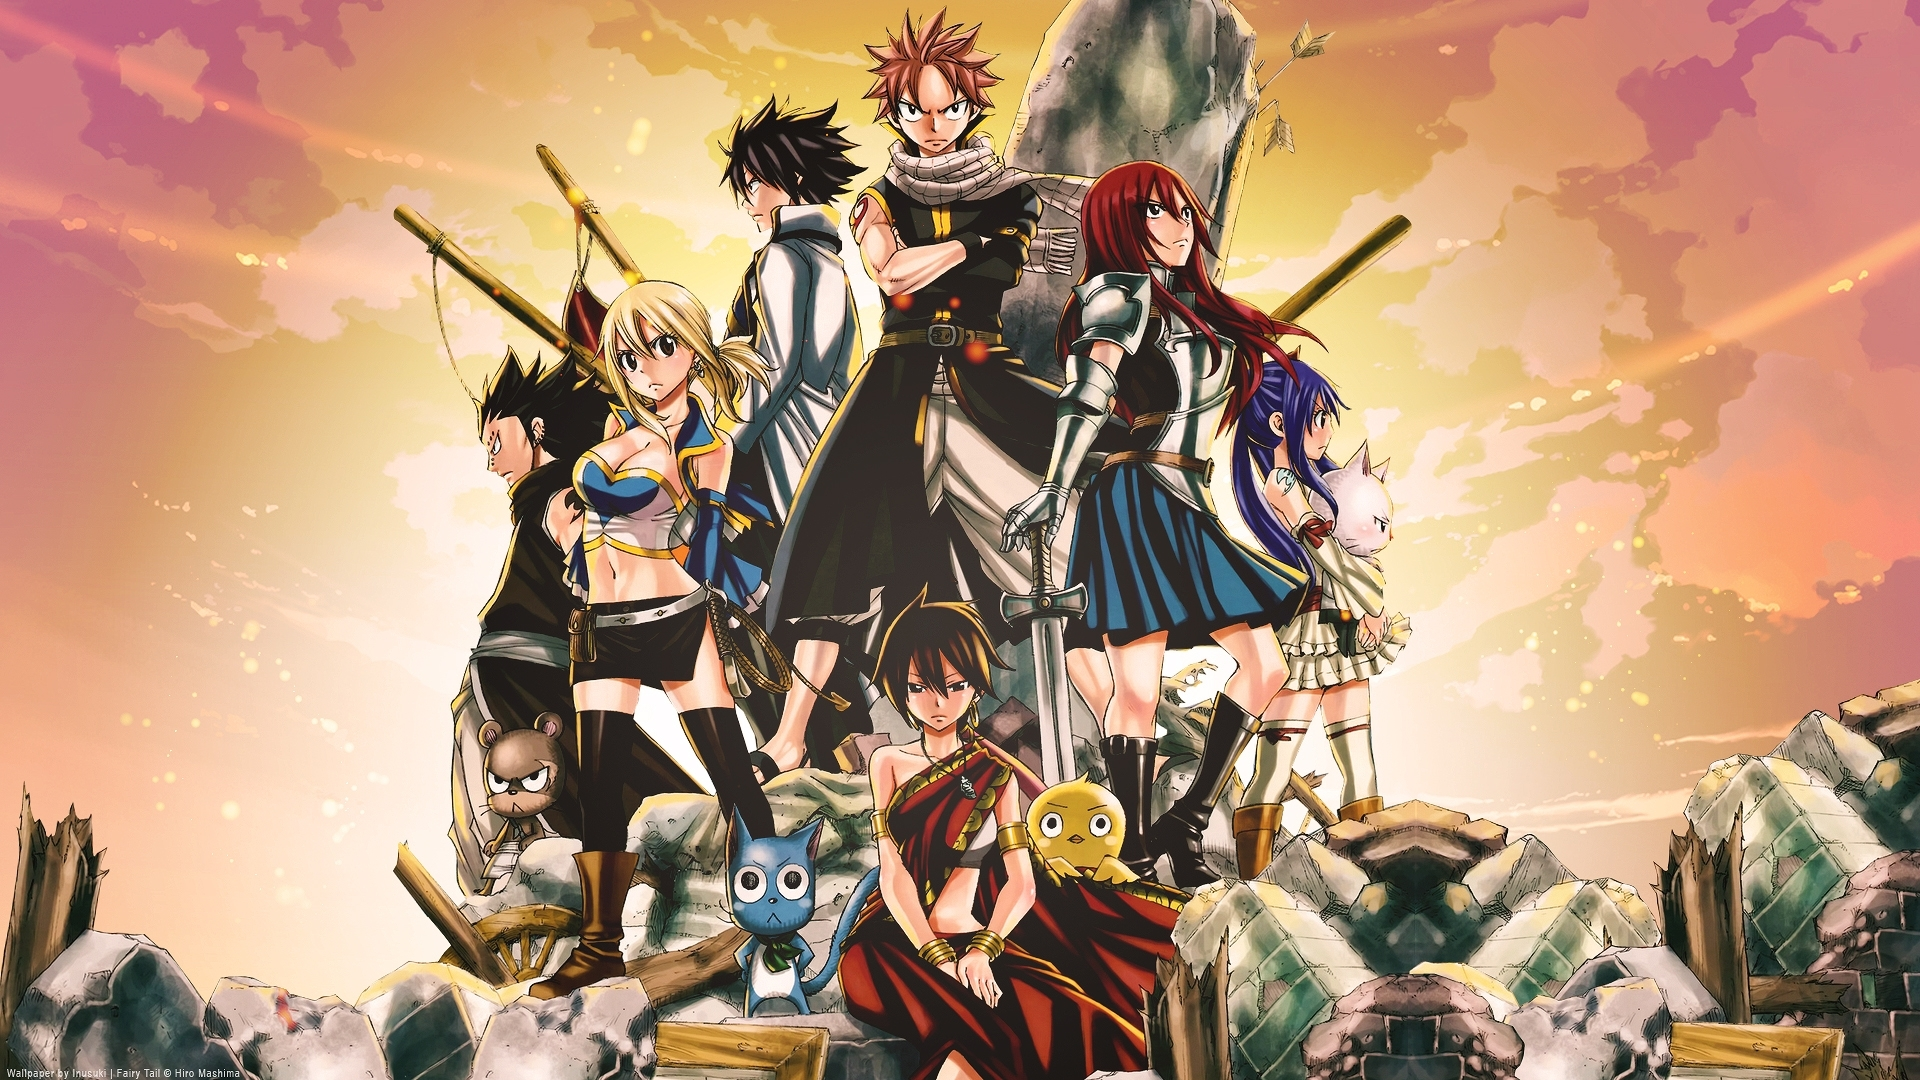 fairy-tail-fairy-tail-34202701-1920-1080 - 10 000 fonds d'écran hd